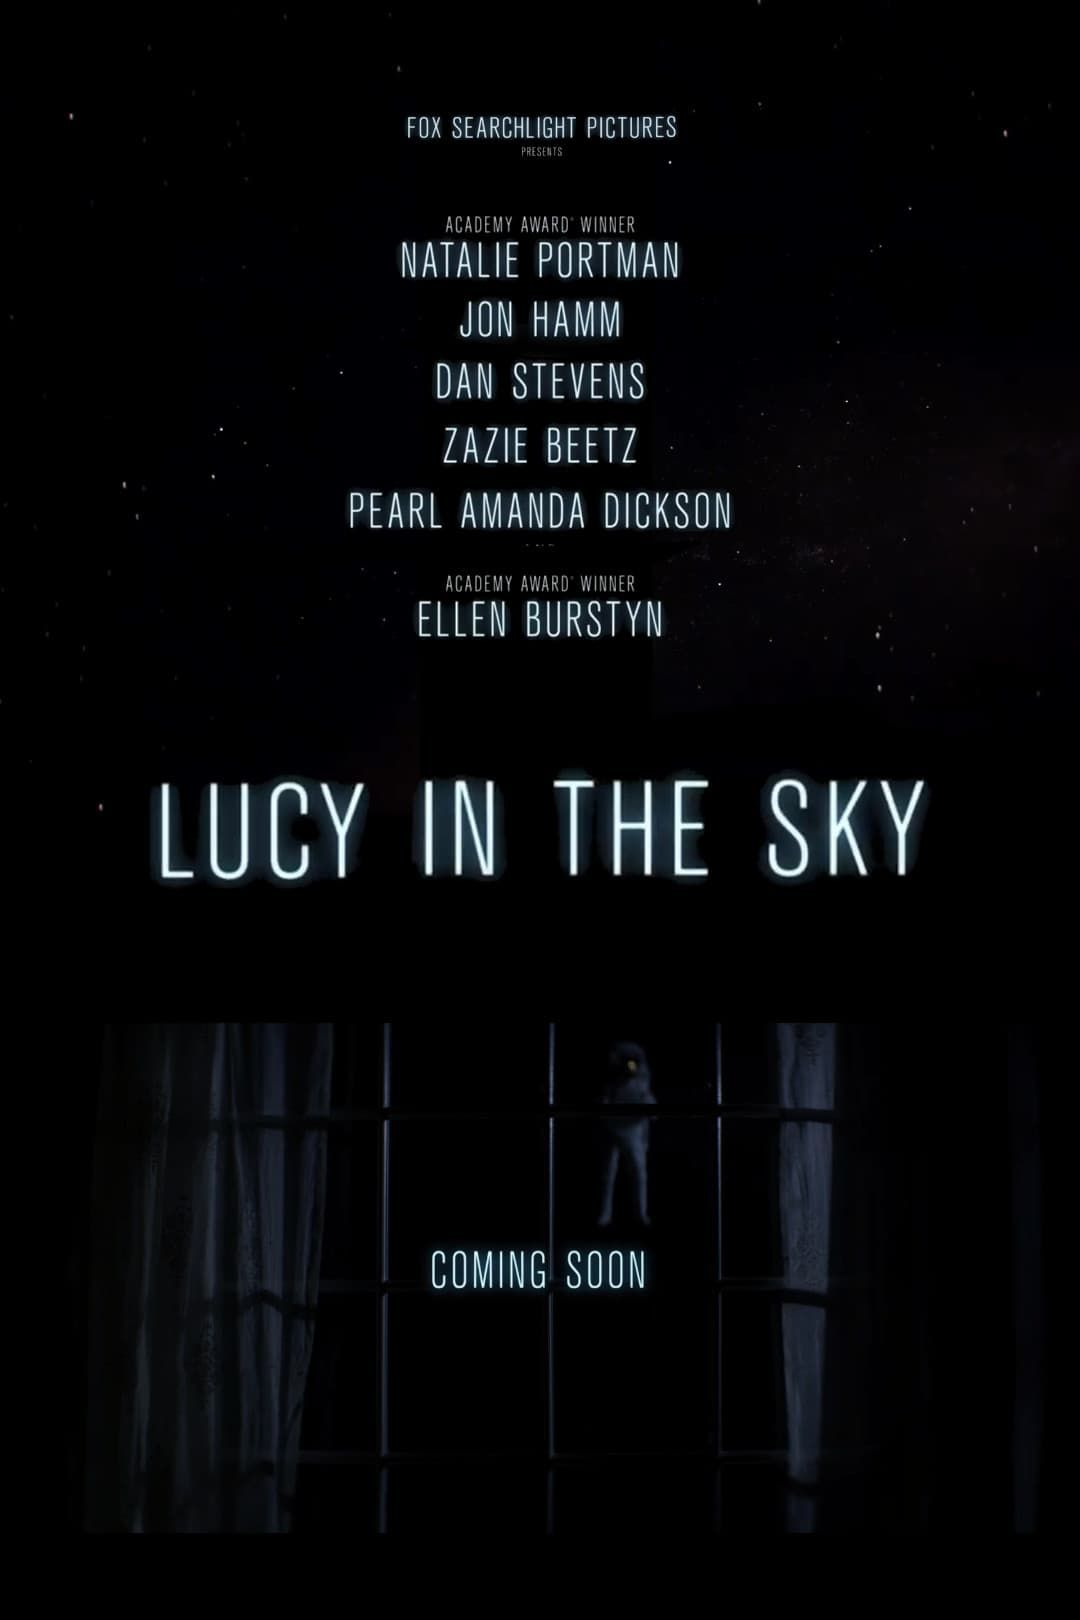 Ver Lucy In The Sky C Pelicula Completa En Espanol Latino Full Movies Life Of Crime Movies Online